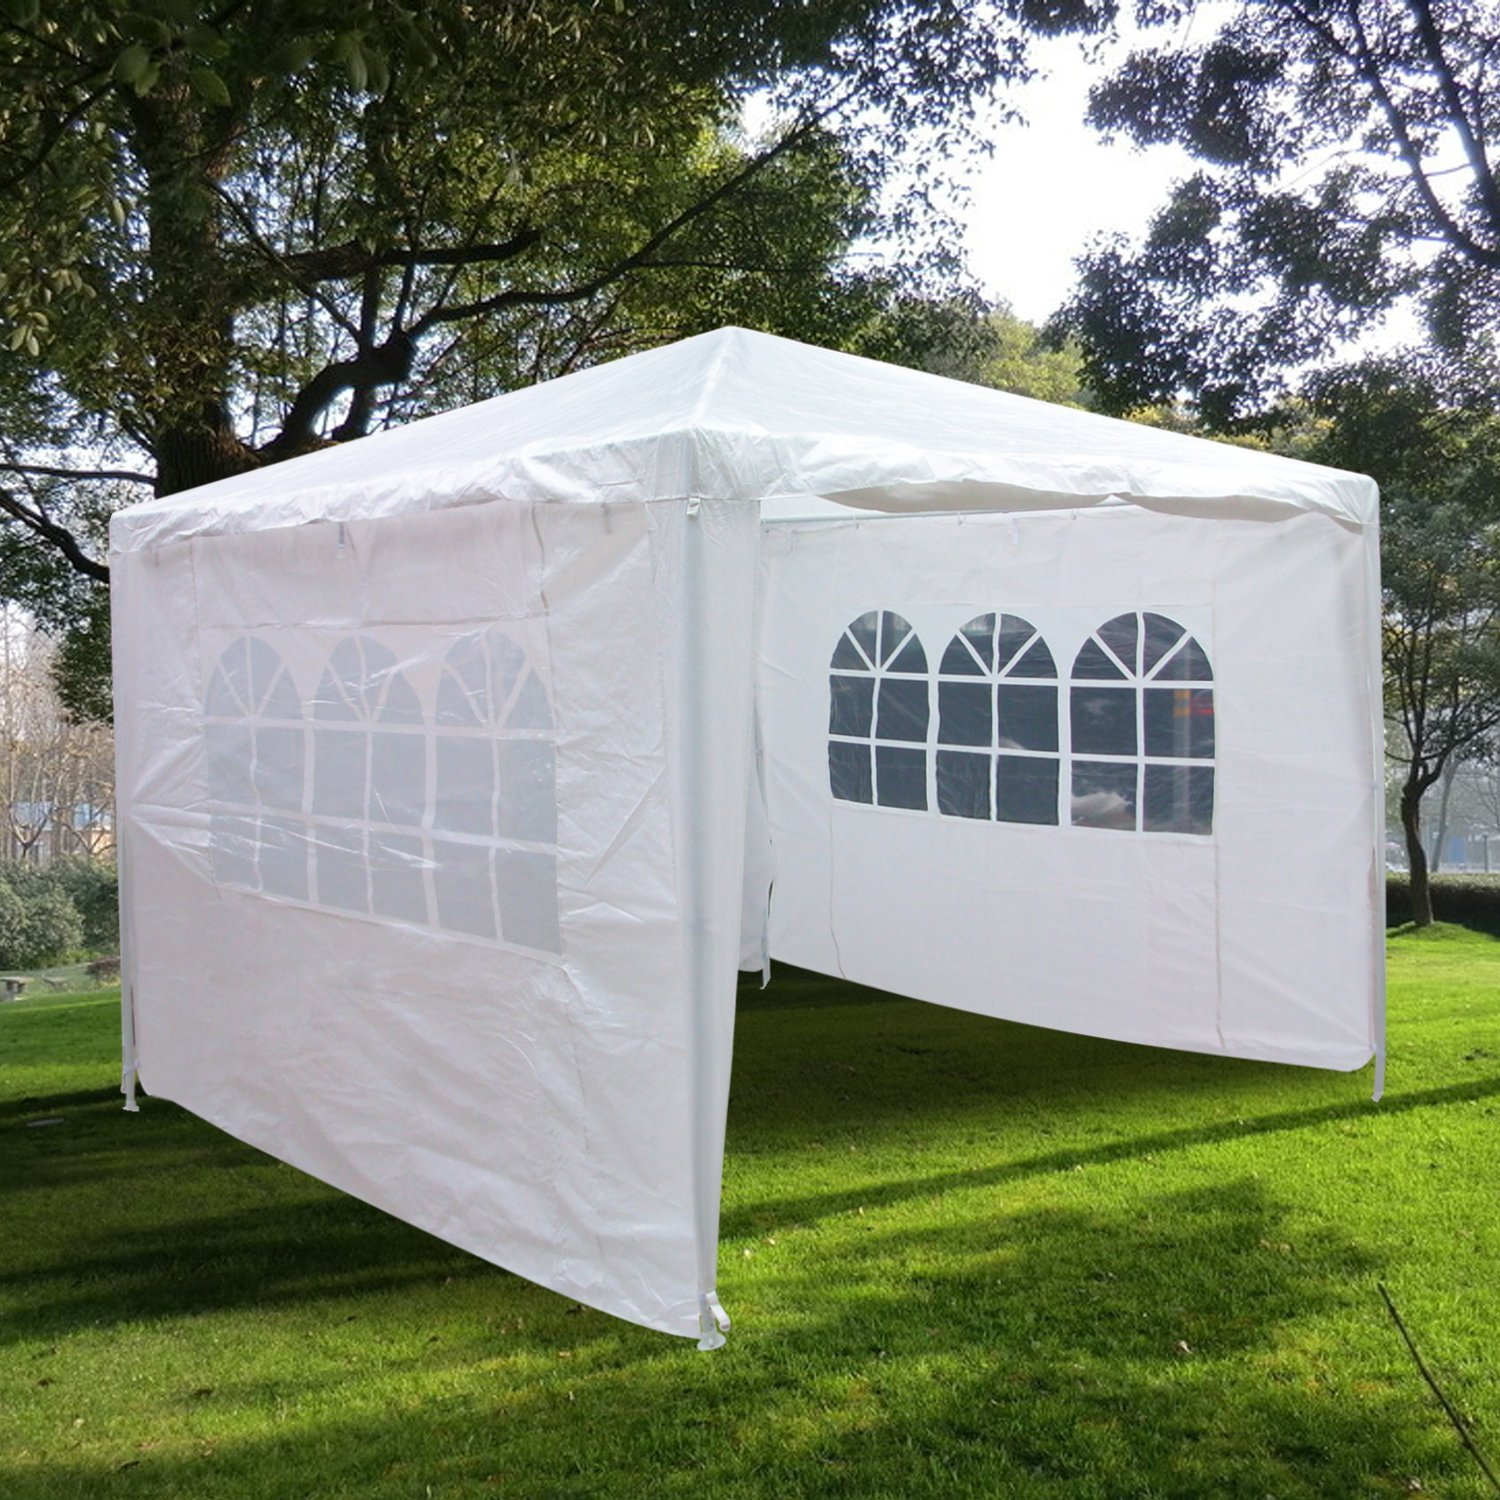 Quictent 10'x 10' Pop Up Canopy with Sidewalls Outdoor Wedding Party Shelter